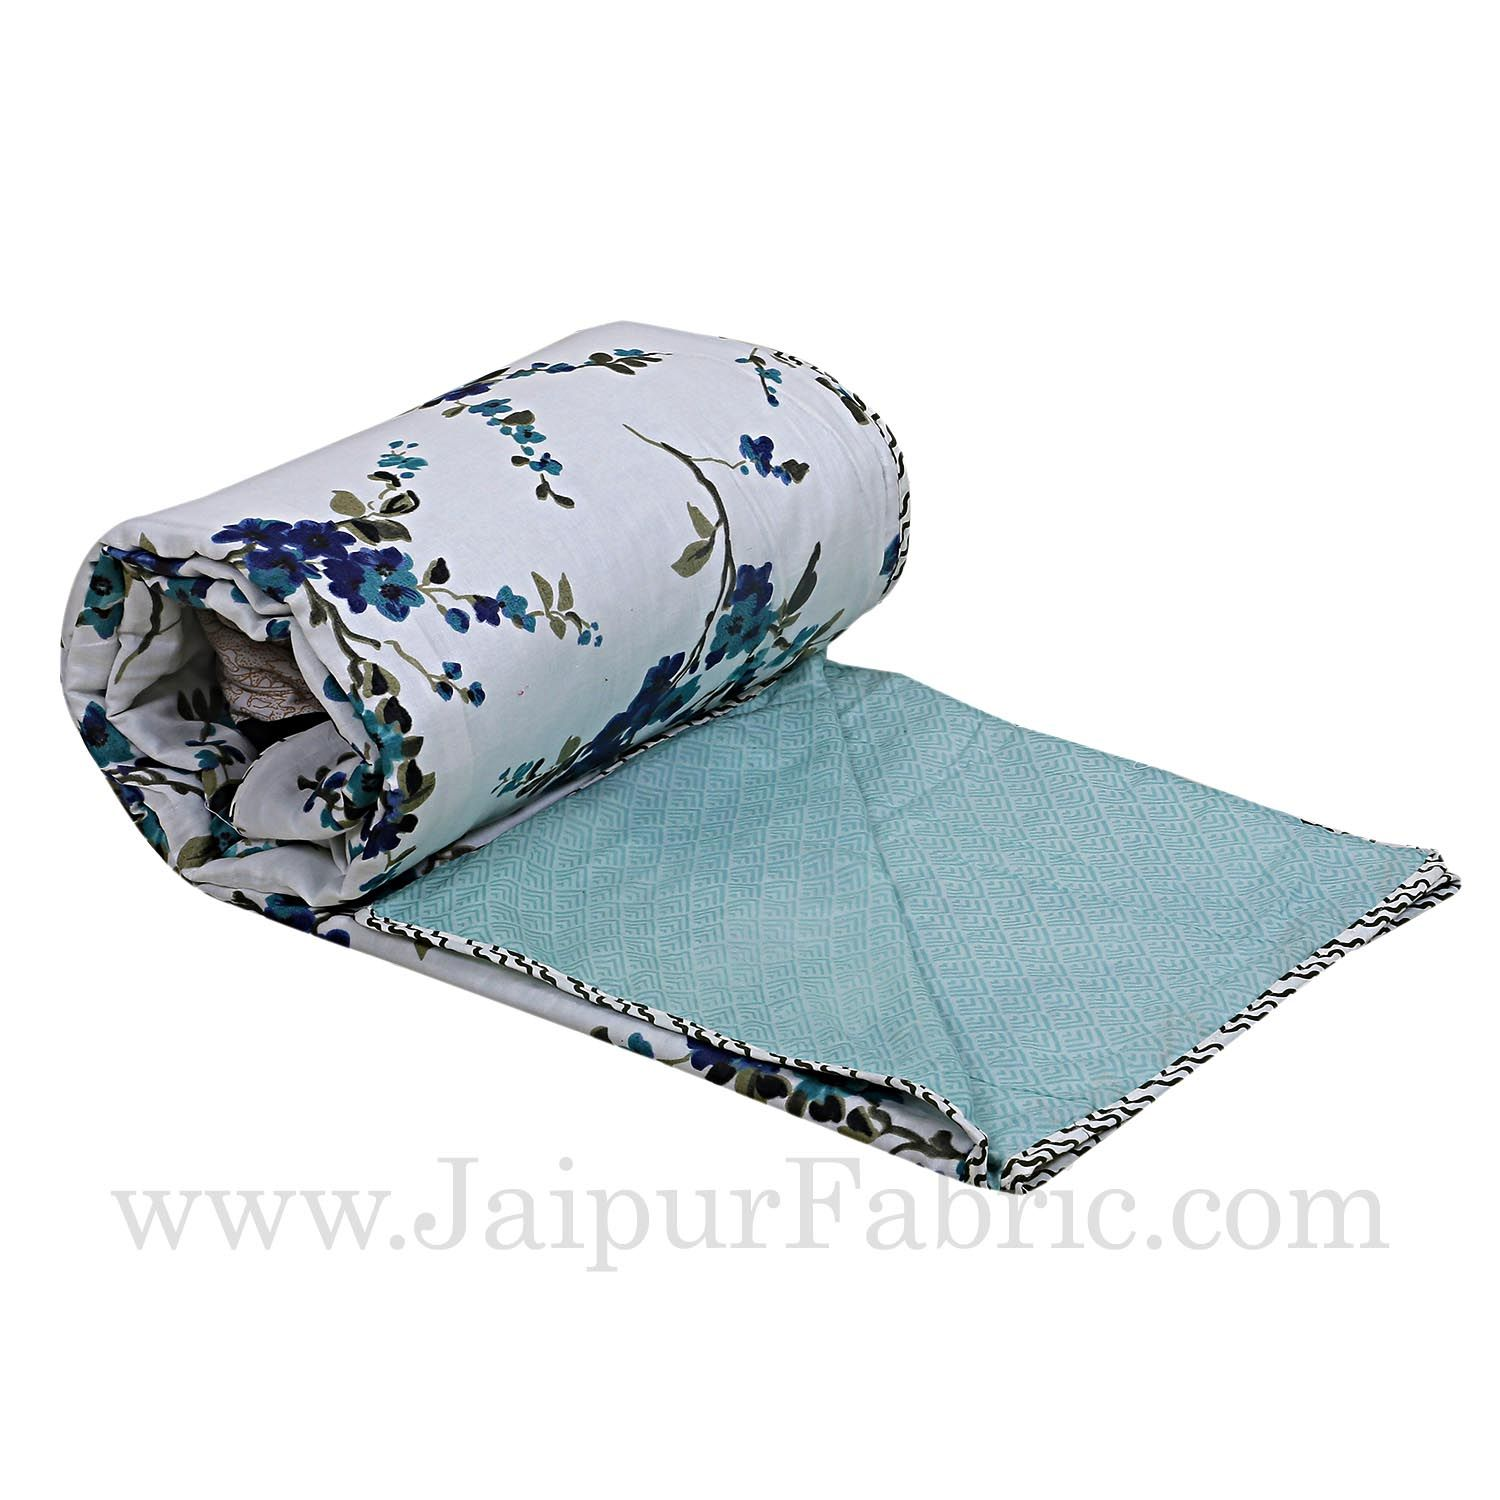 Muslin Cotton Single bed Reversible mulmul Dohar in blue floral motif print